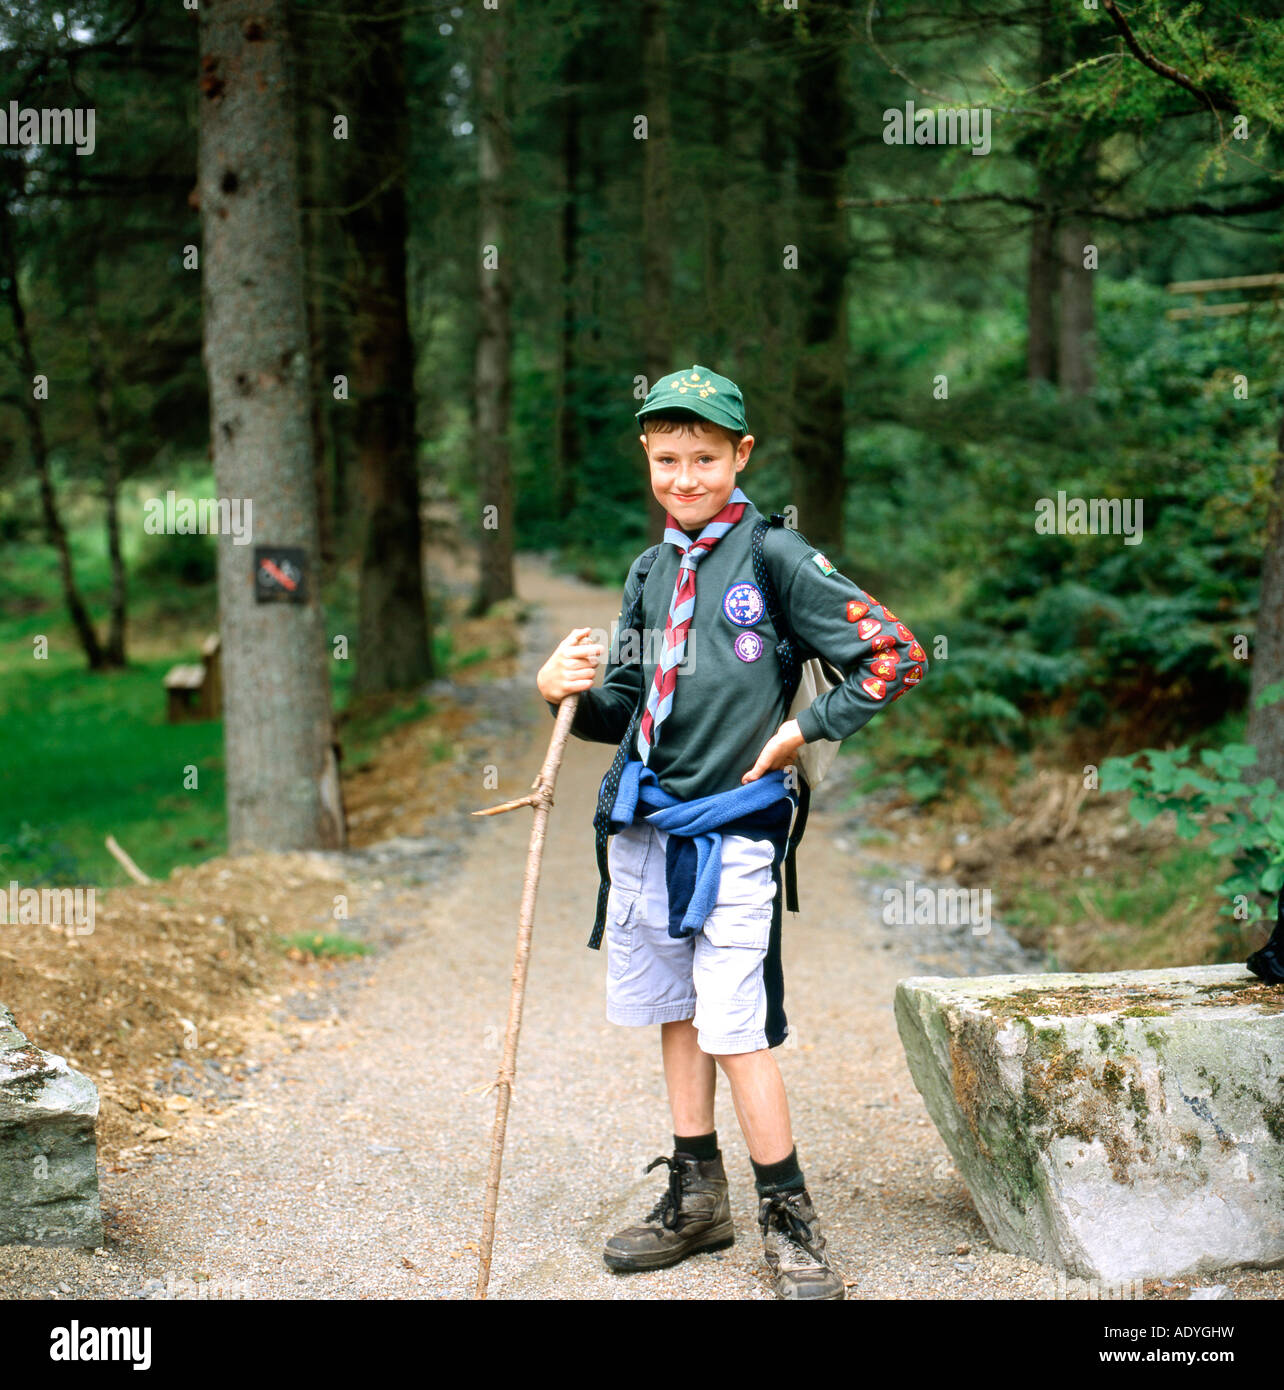 Full length portrait of one boy scout in uniform with badges on sleeve standing outdoors on a woodland trail in - Stock Image